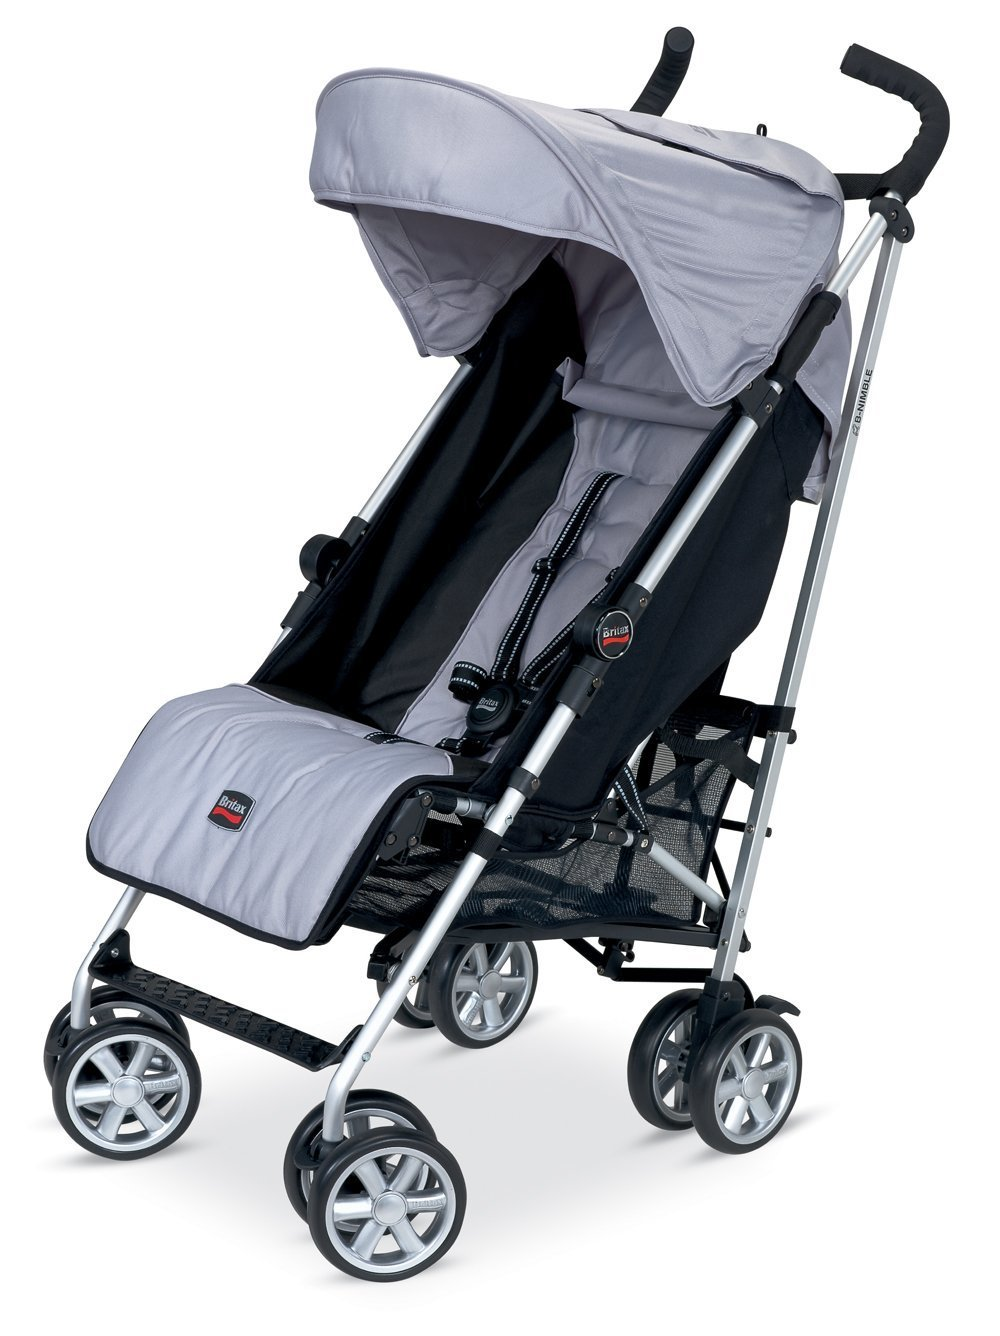 Reclining Umbrella Strollers – Top 5 Reclining Umbrella Strollers